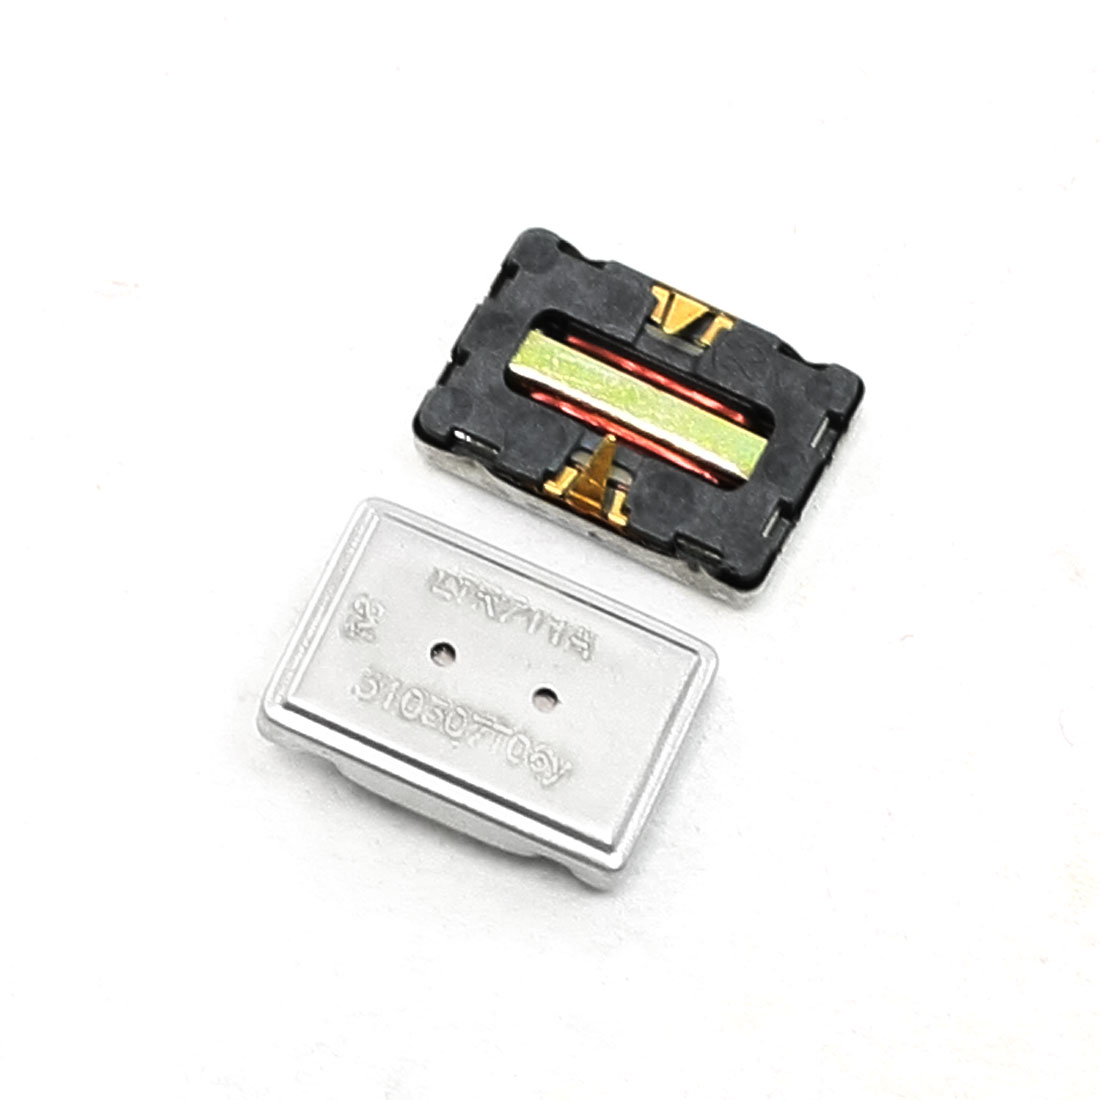 2 Pcs Repair Part Ear Speaker Earpiece Reciever for Nokia 6230/N73/N81/N95/5300